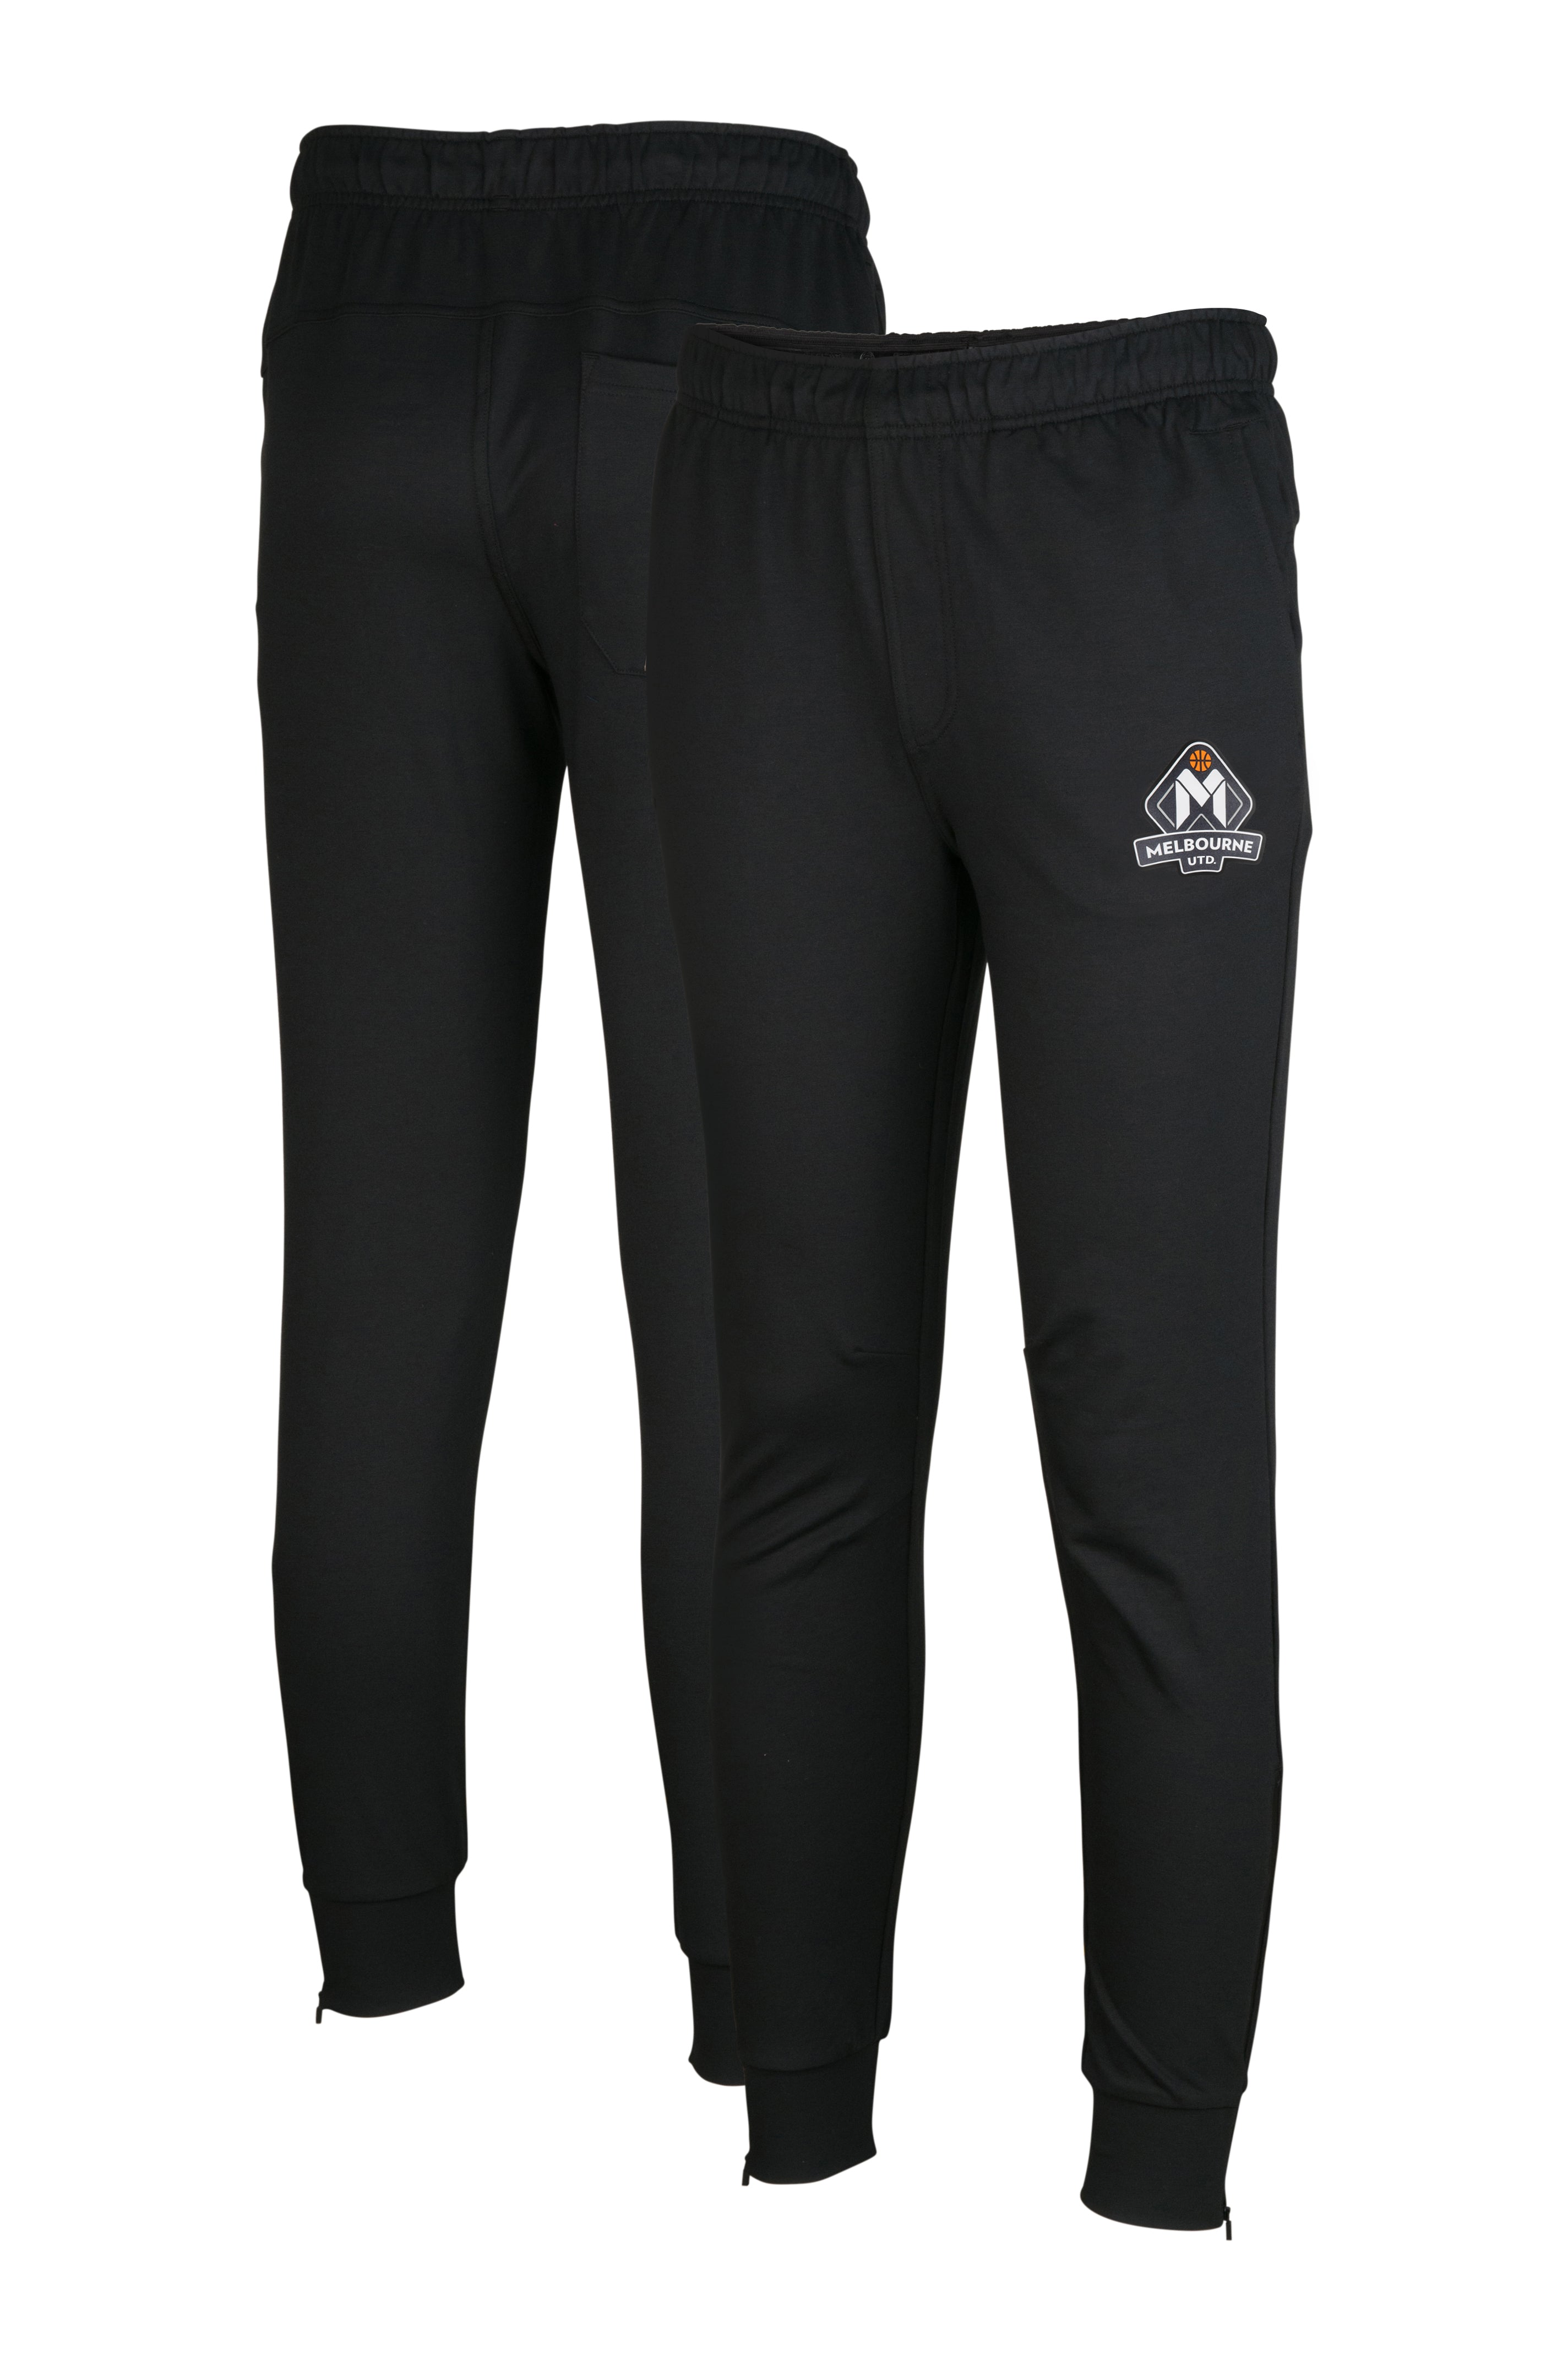 melbourne-united-performance-trackpant - Front and Back Image